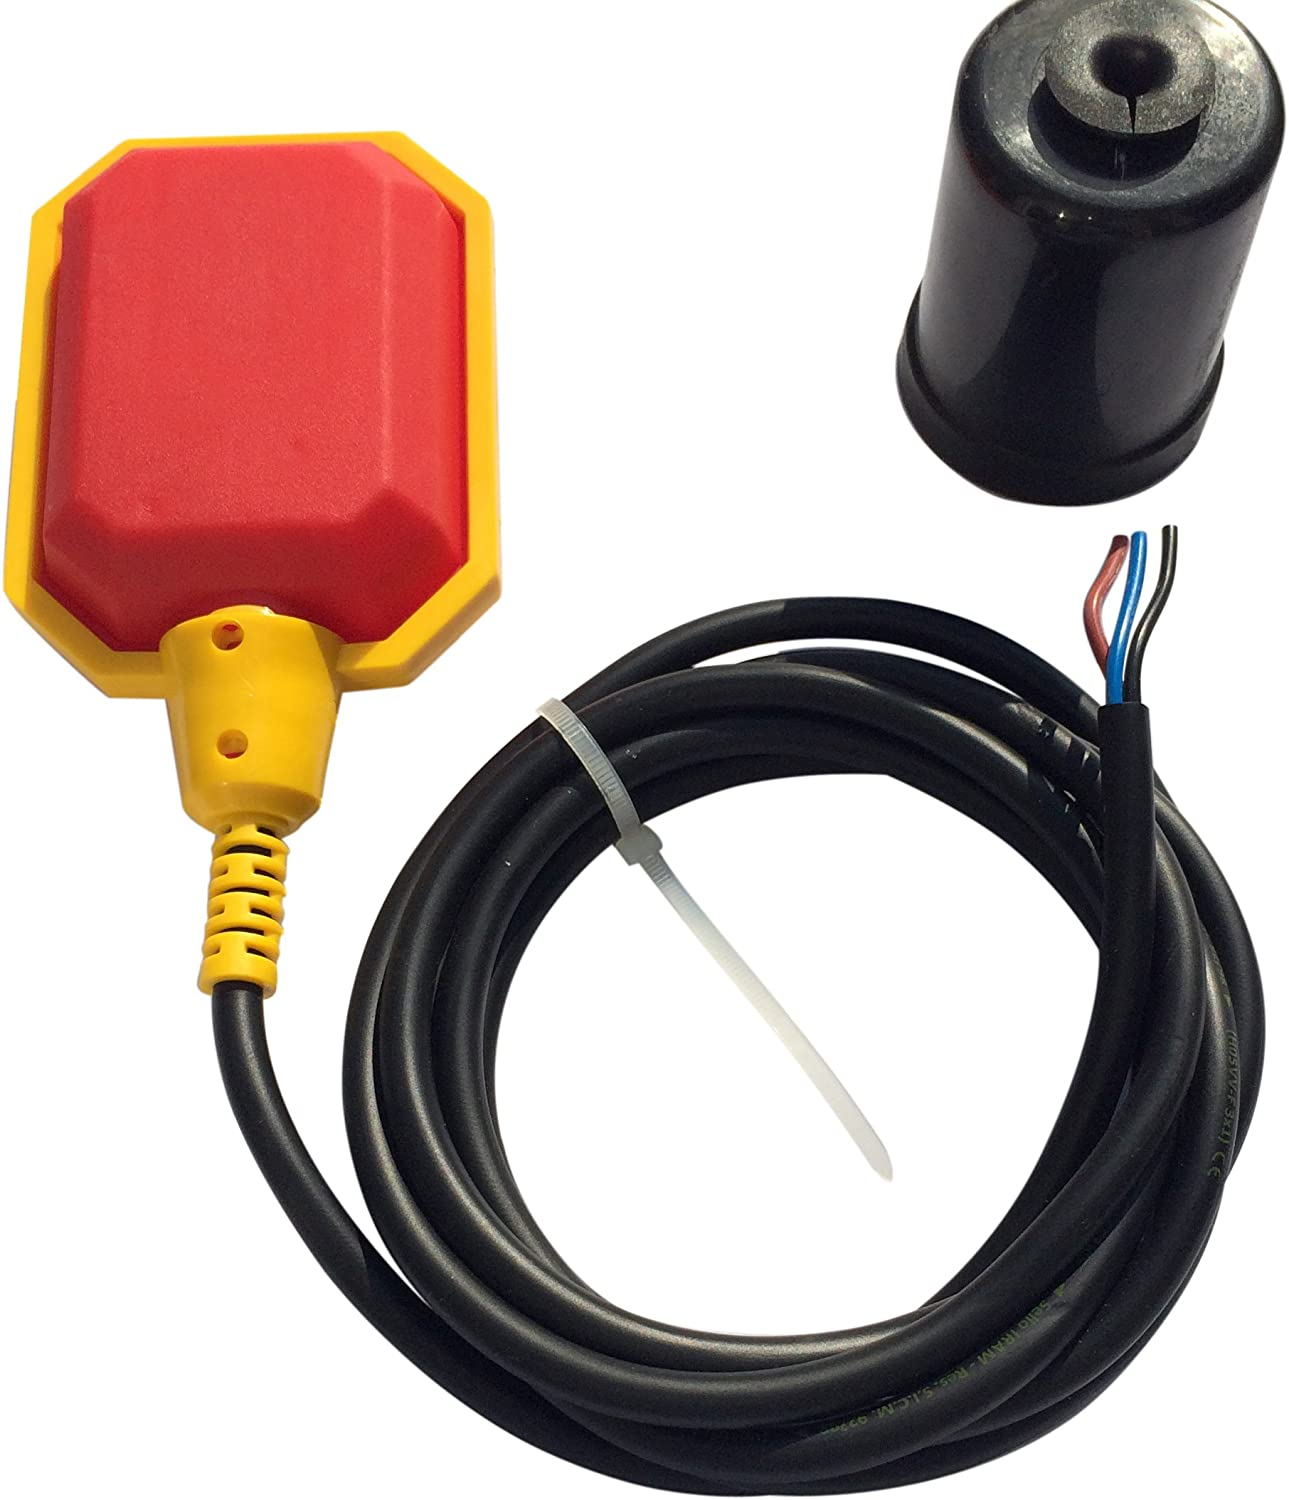 QWORK 10 FT Cable Float Switch Water Level Controller Durable Water Tank Sump Pump